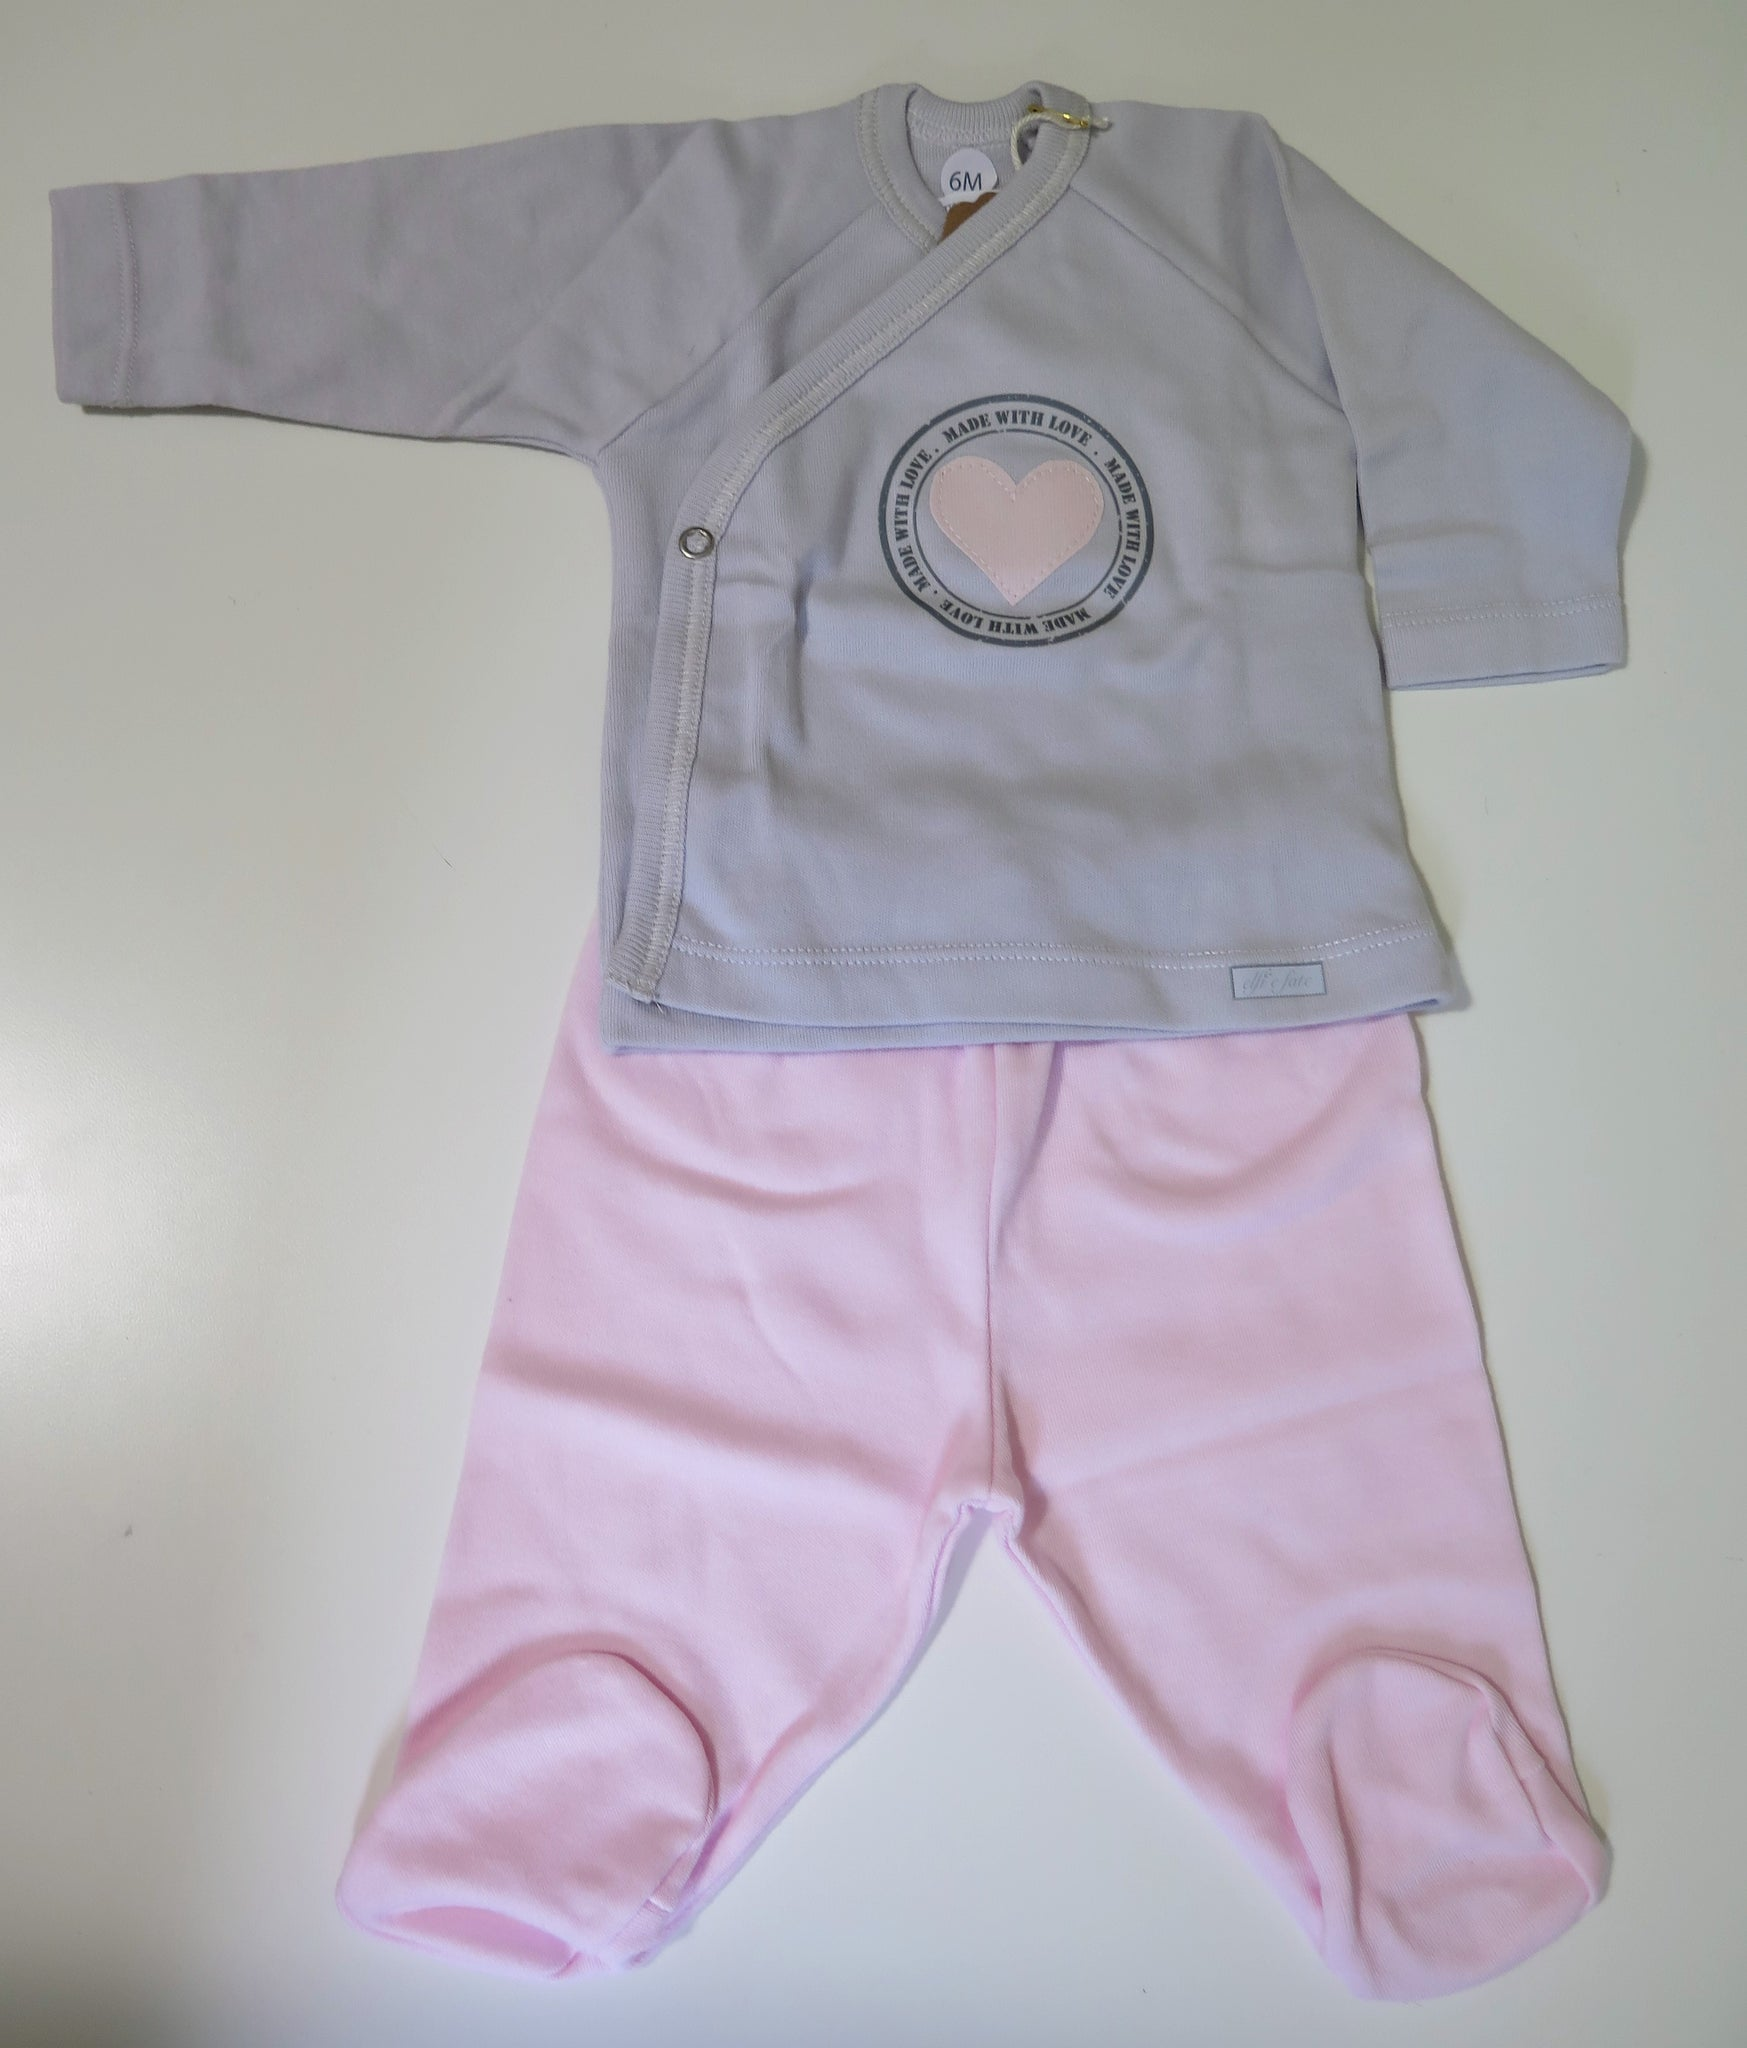 Elfi e fate footed 2 pc set with pink heart